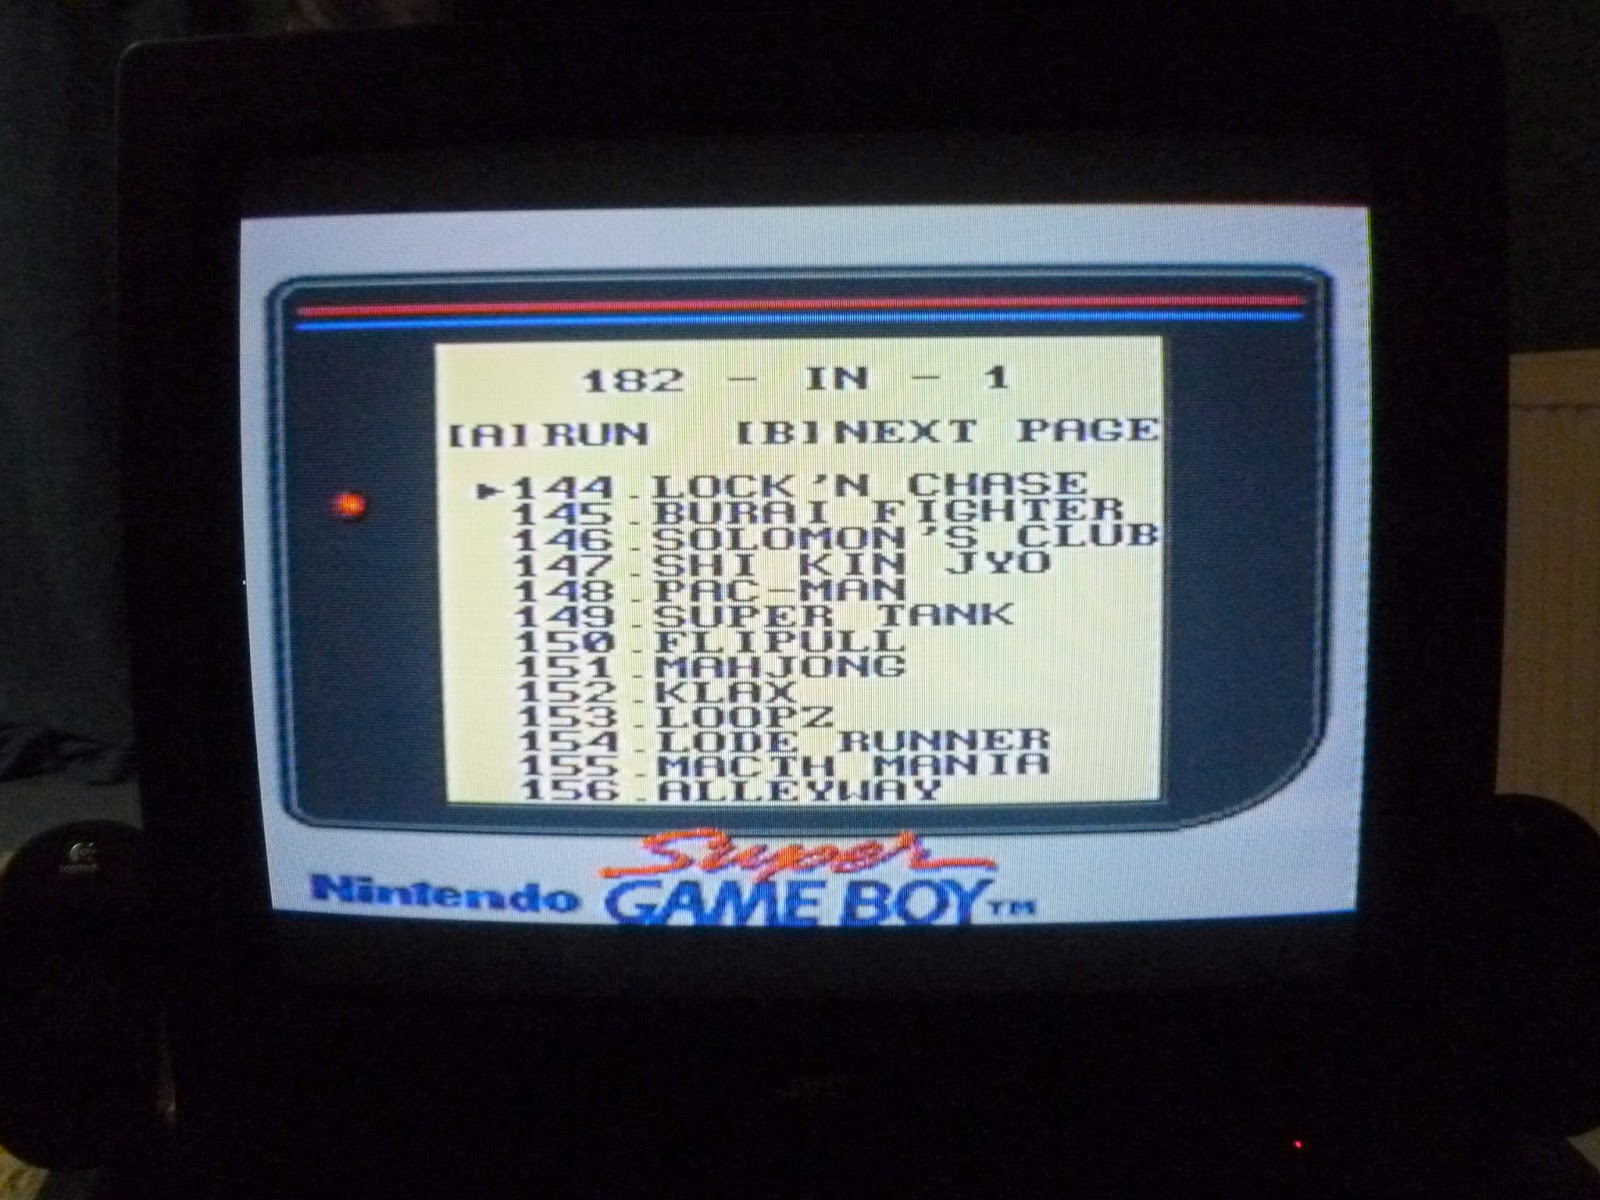 game rpg gameboy color : Game Rpg Gameboy Color The Menu Appeared To Be Using The Sgb Default Colour Scheme